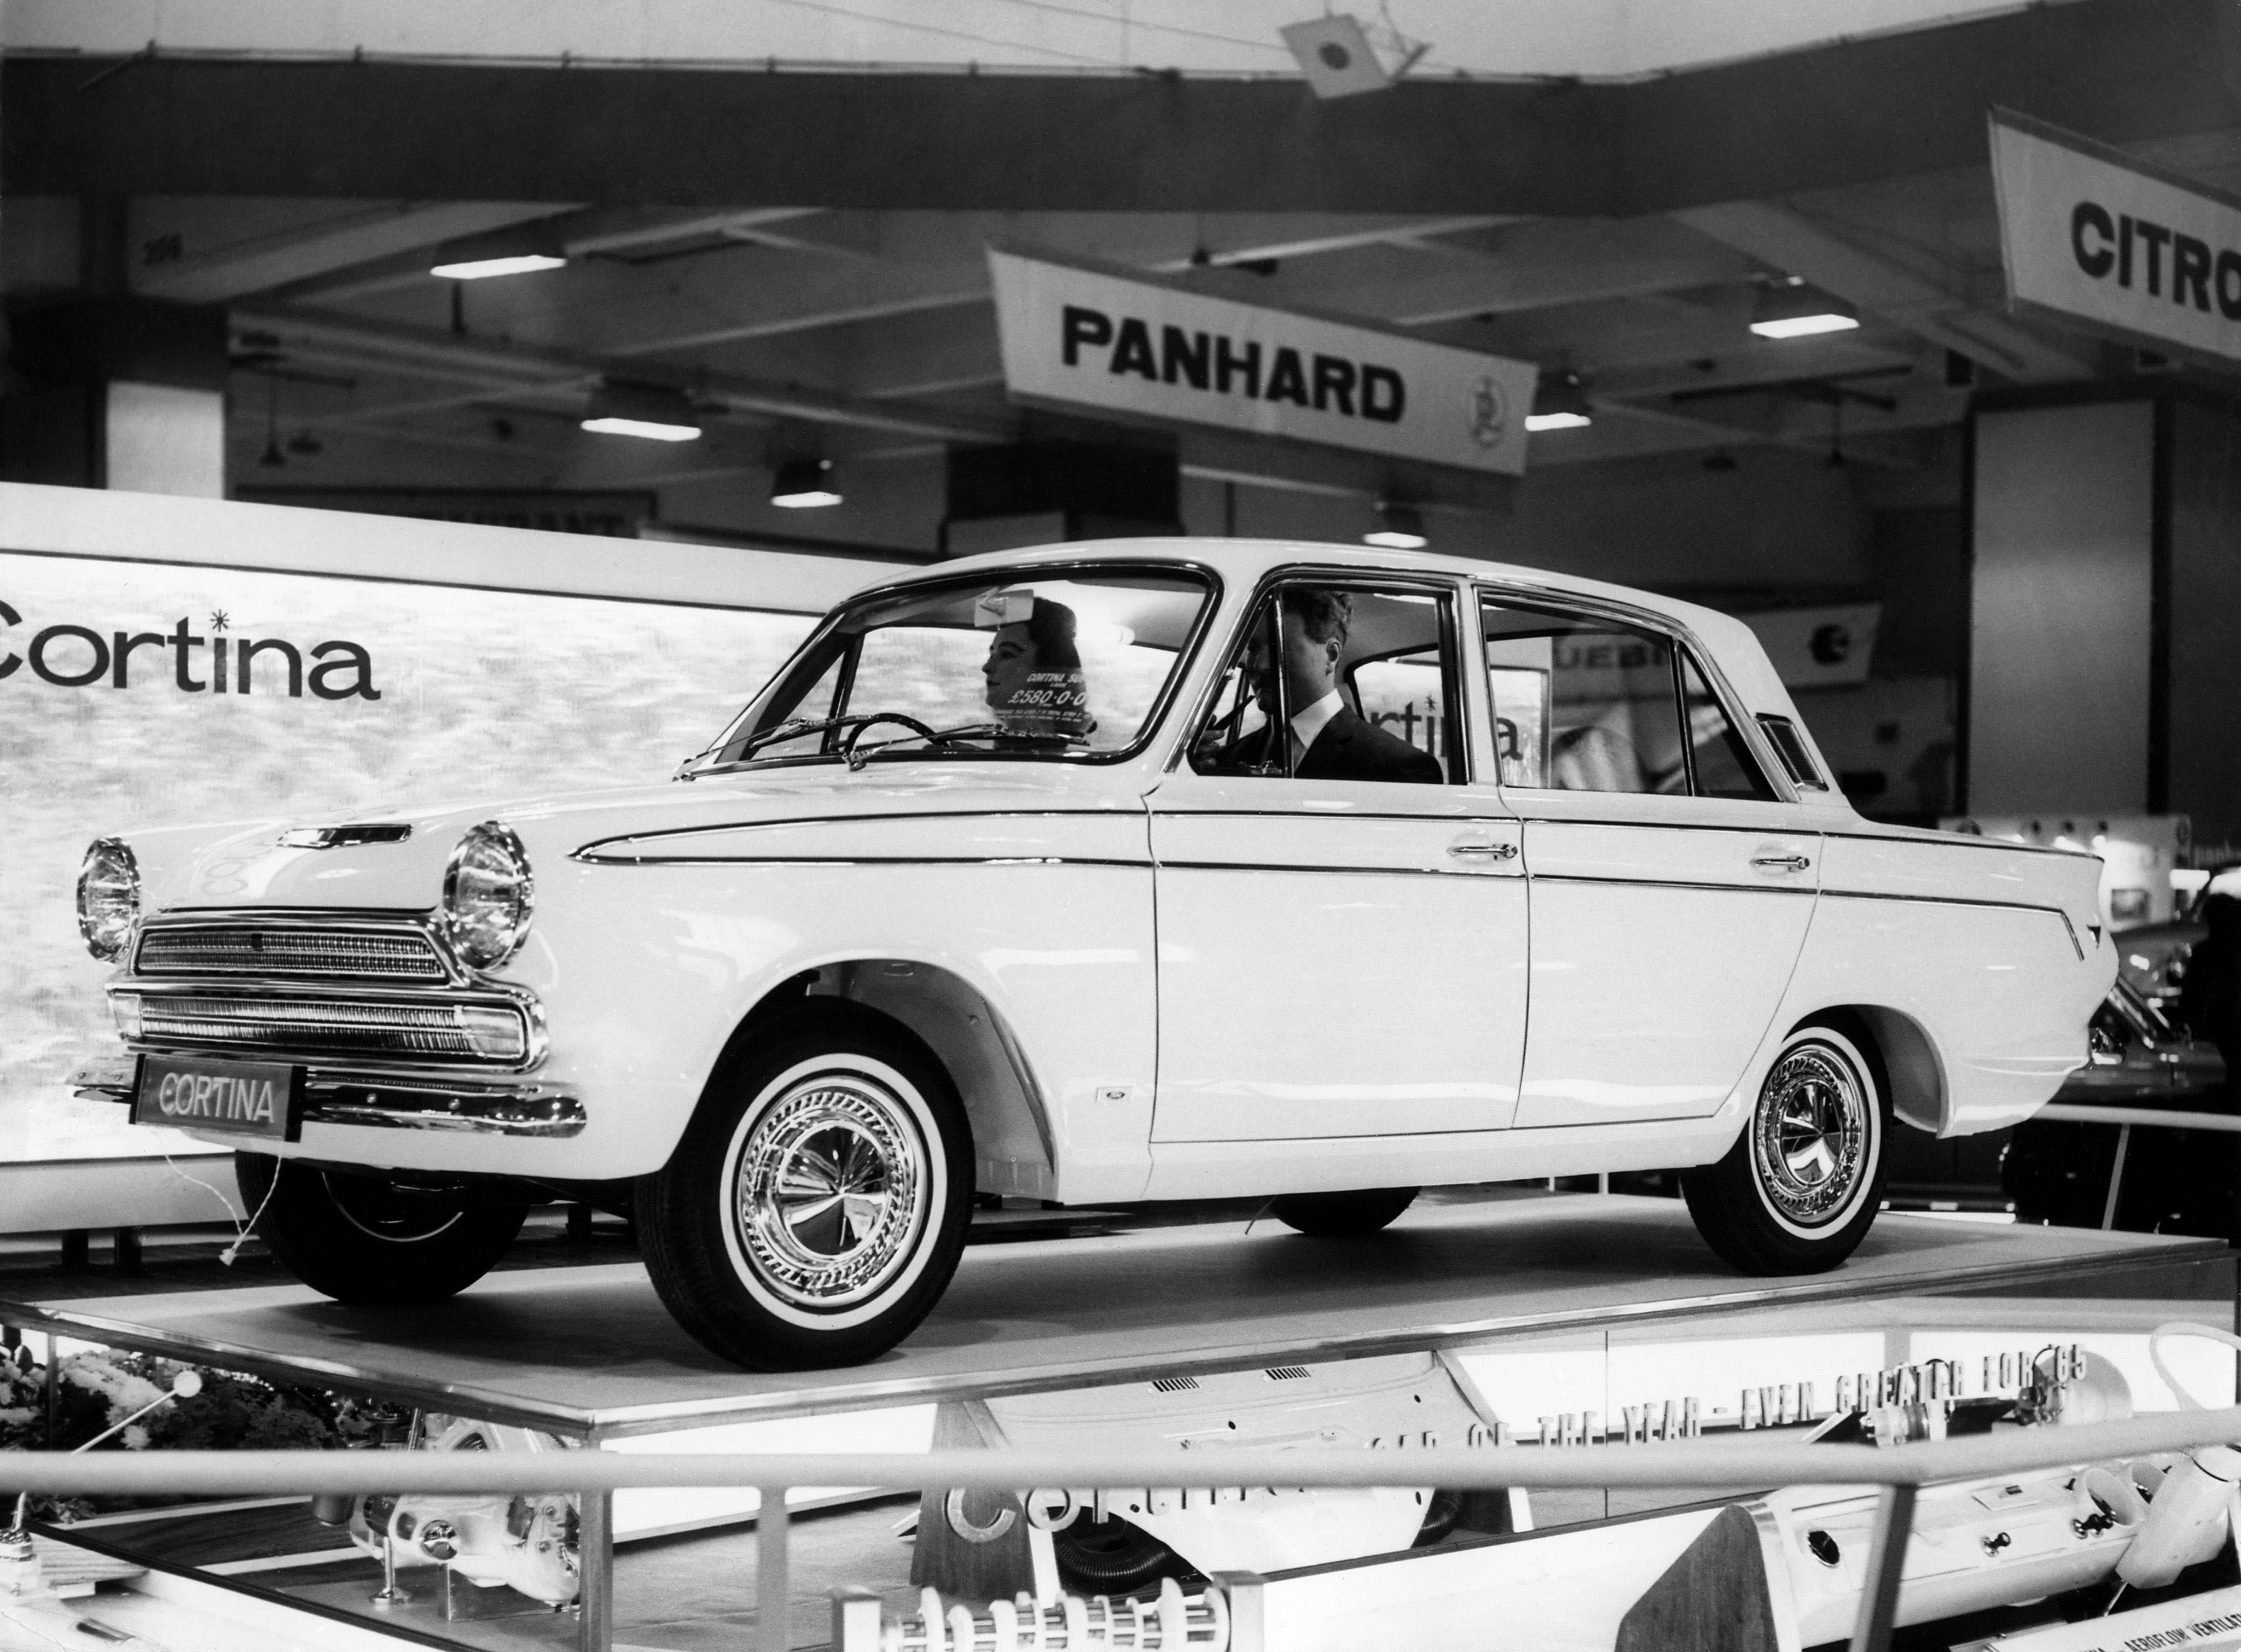 The Ford Cortina Mk 1 was first on sale in 1962 and was voted car of the year in 1964.